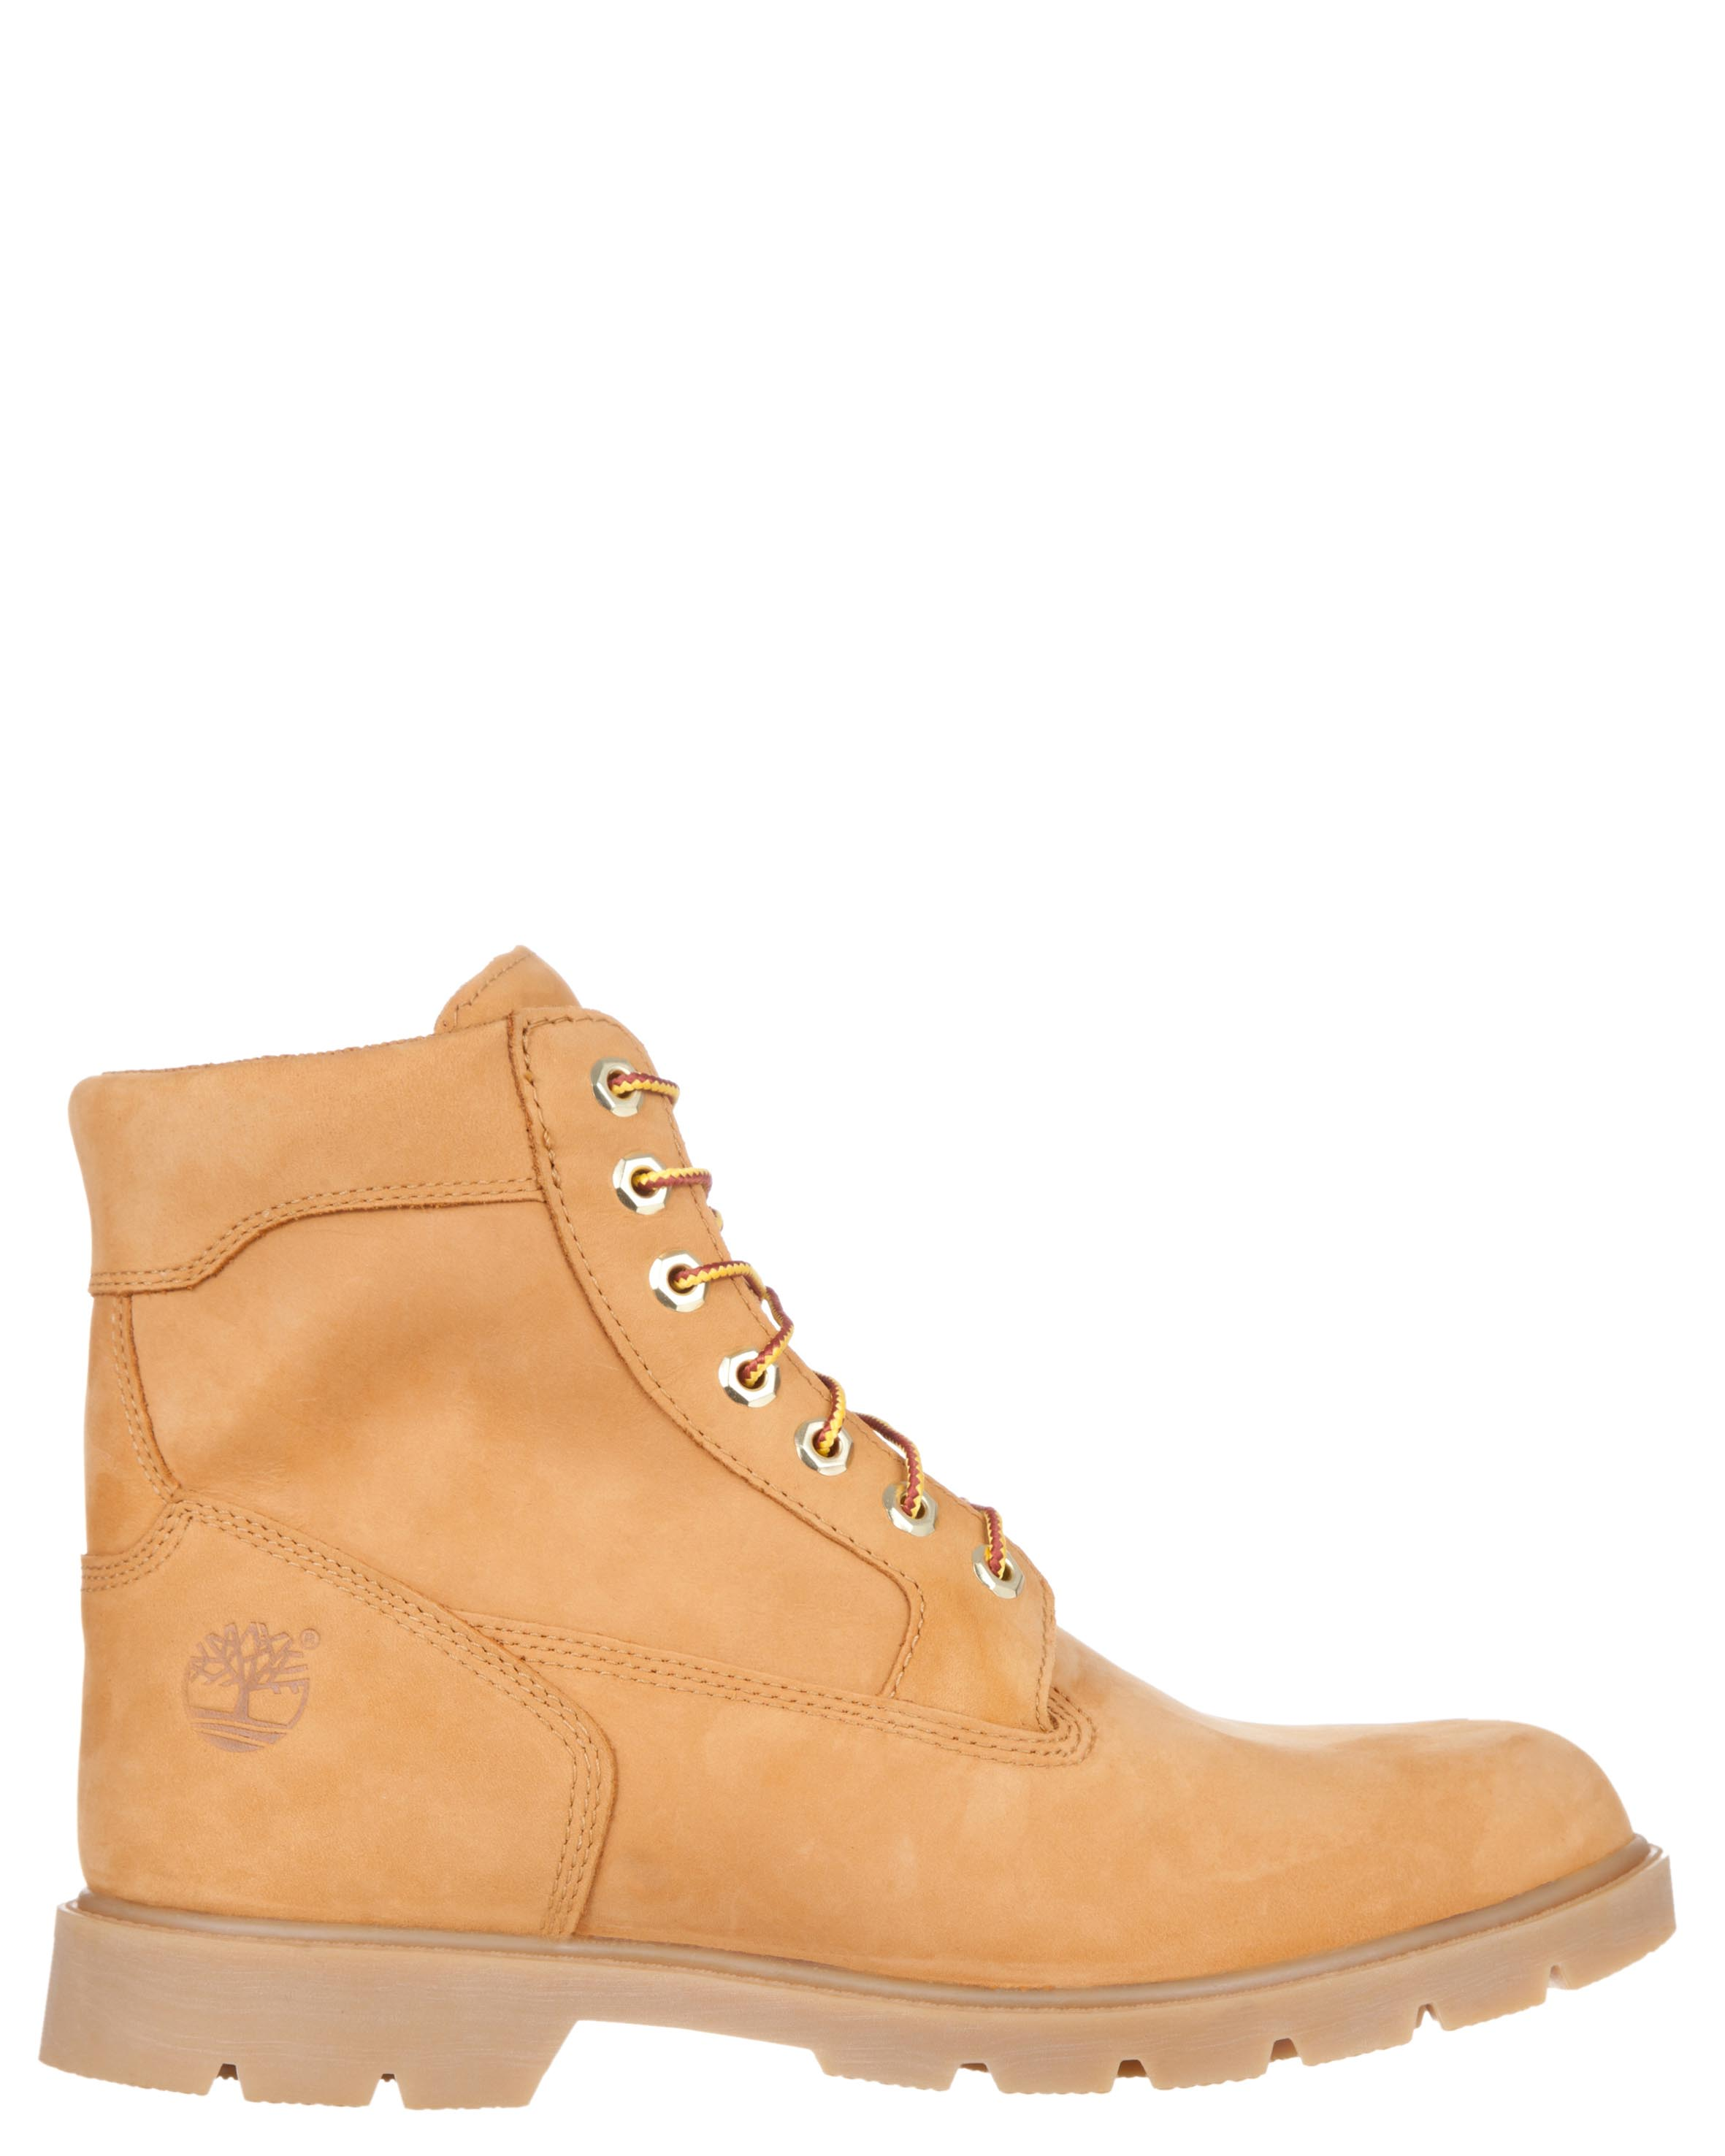 Online Timberland Work Boots Fur Inside Warm for 2014 Winter On Sale